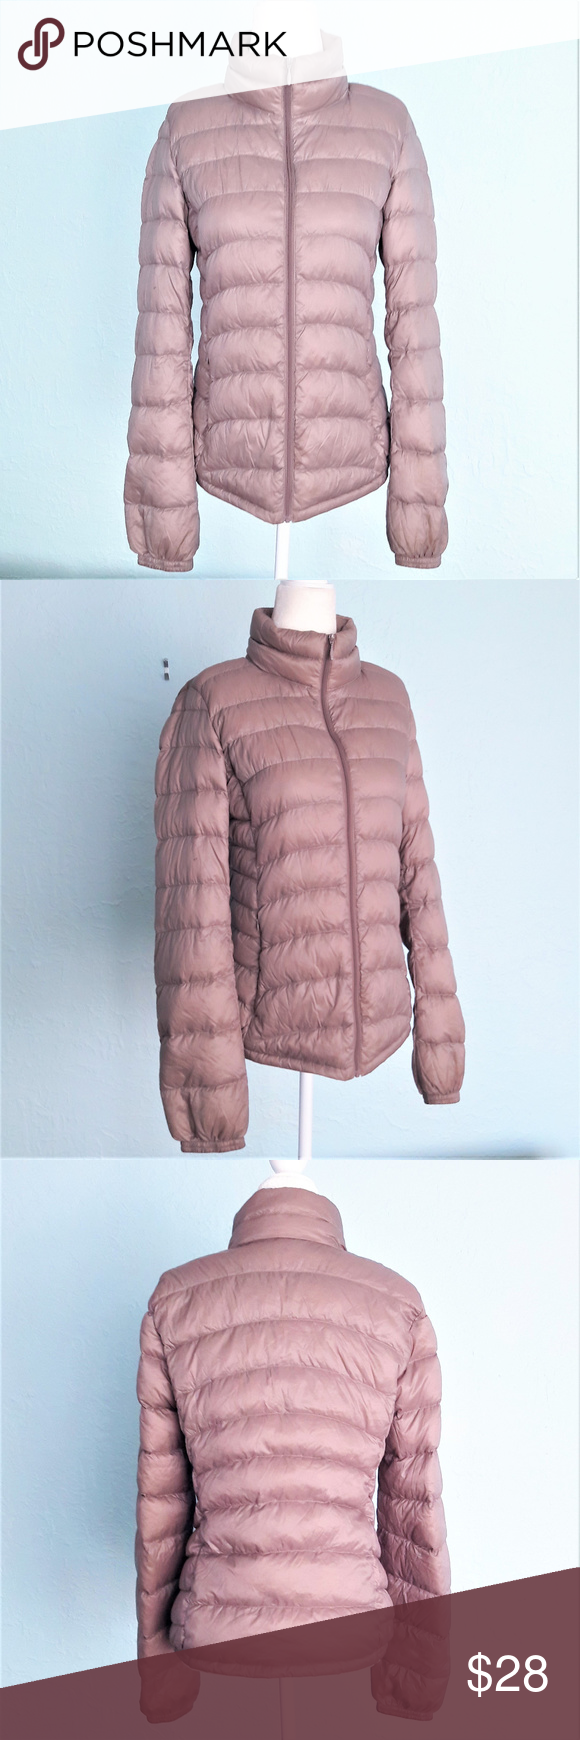 Uniqlo Ultra Light Down Puffer Jacket Tan S This Sleek Puffer Coat By Uniqlo Is Light As A Feather Thanks To Especially Enginee Uniqlo Puffer Puffer Jackets [ 1740 x 580 Pixel ]